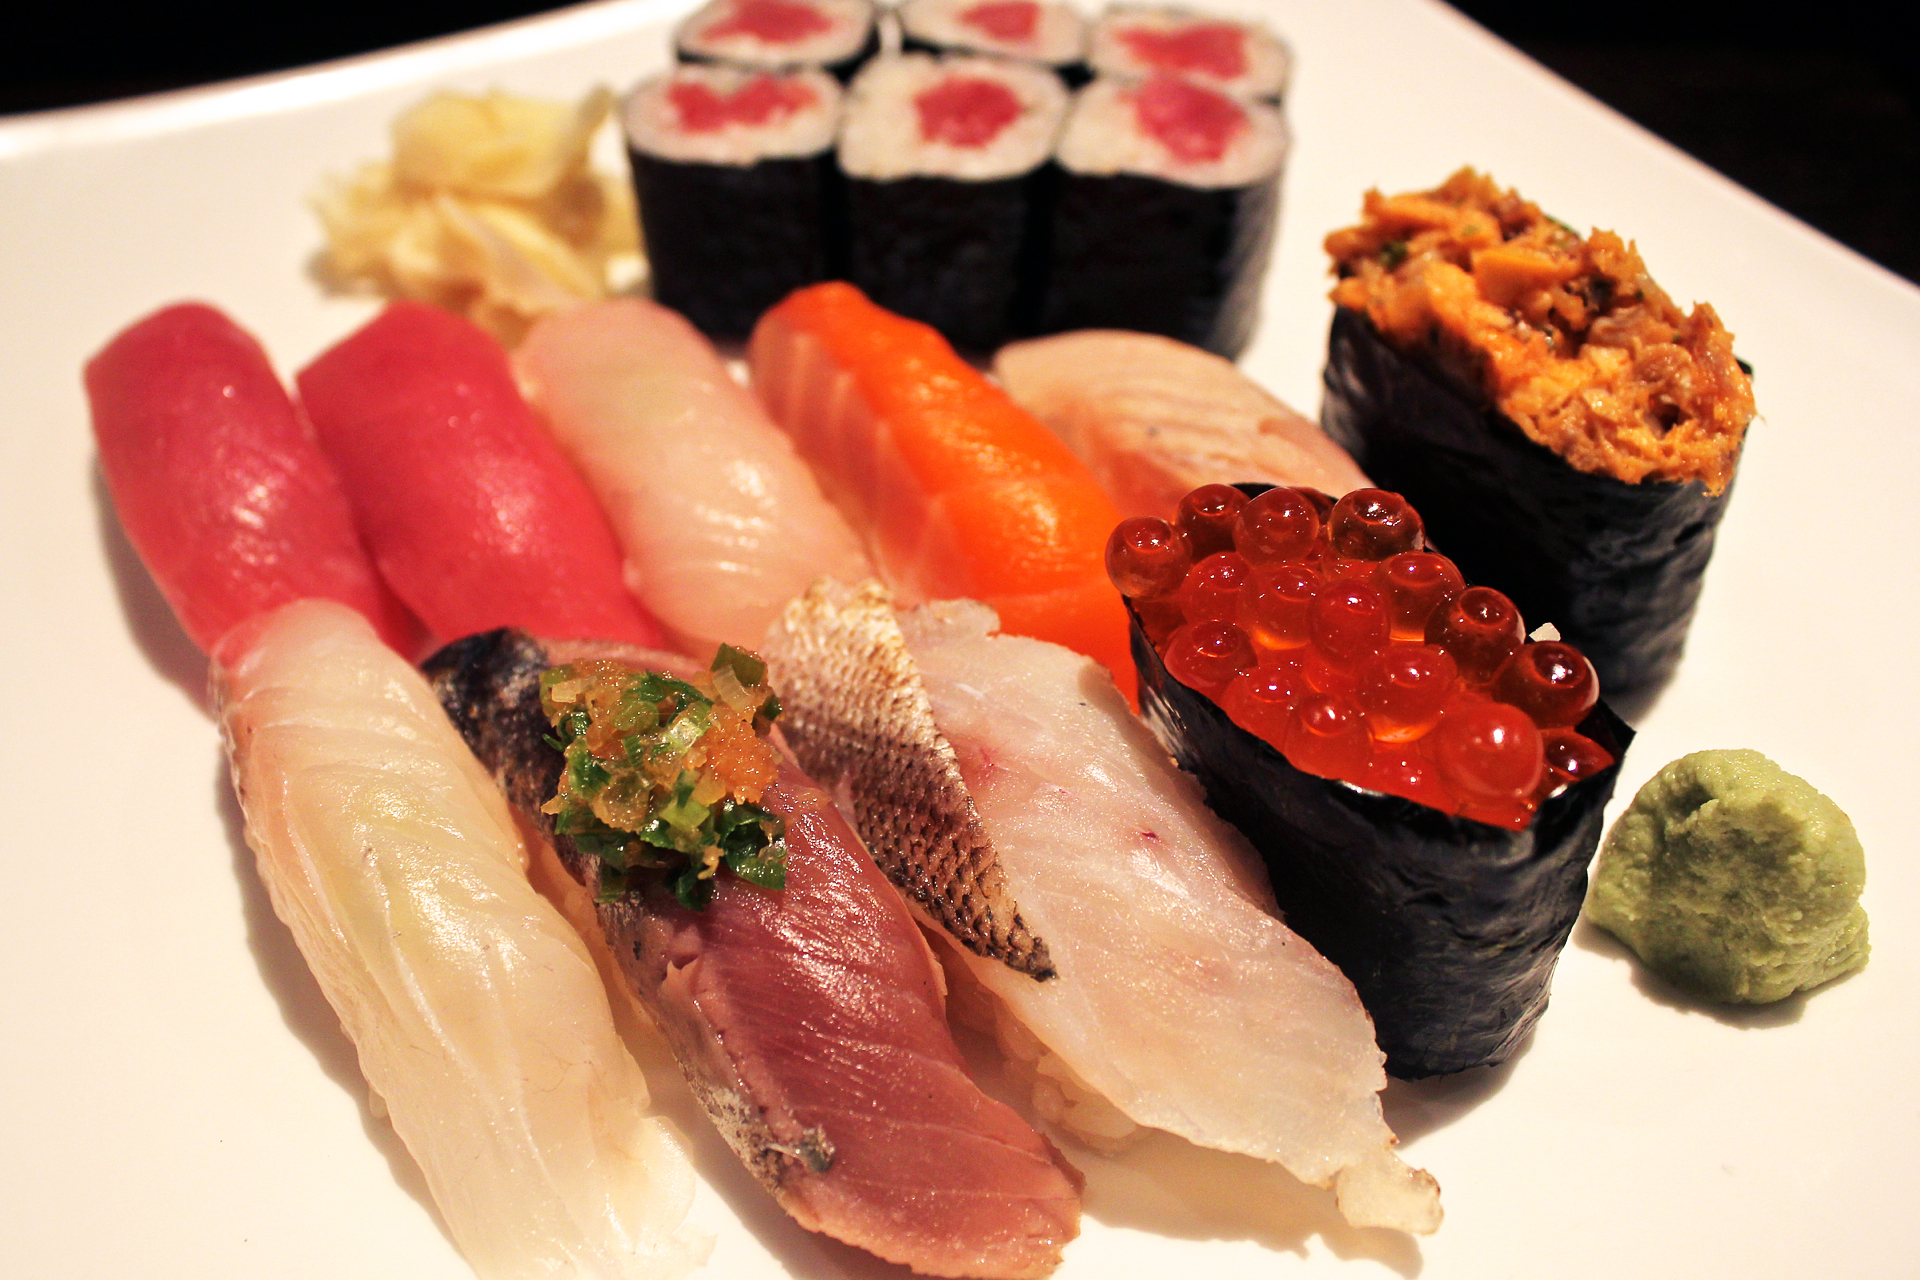 The sushi dinner deluxe at Jin Sho.